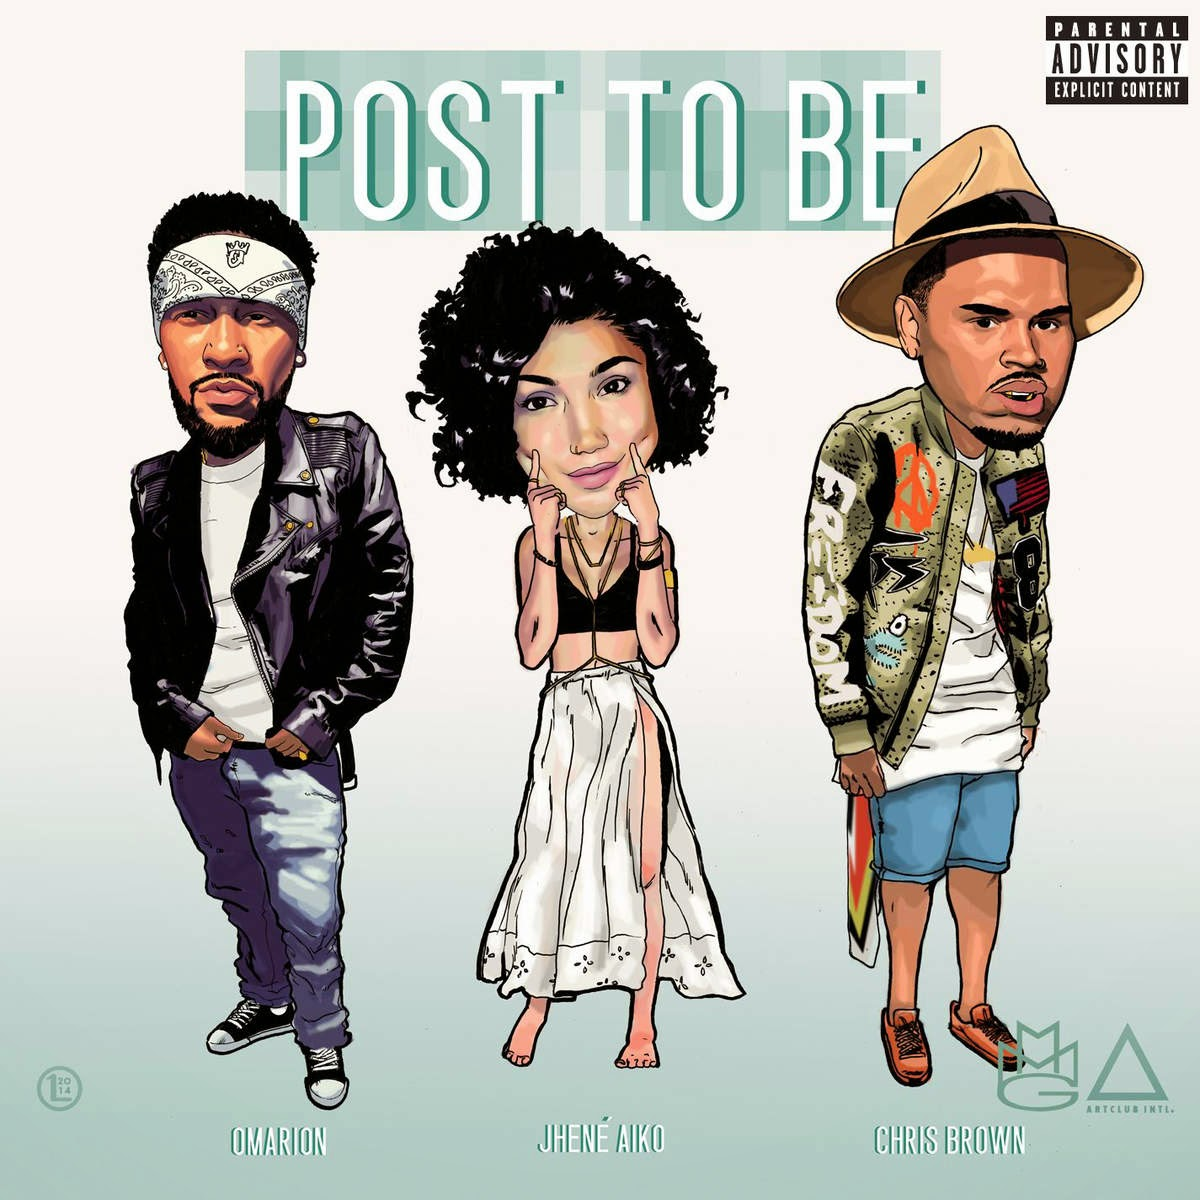 Omarion - Post To Be (feat. Chris Brown & Jhene Aiko) - Single Cover